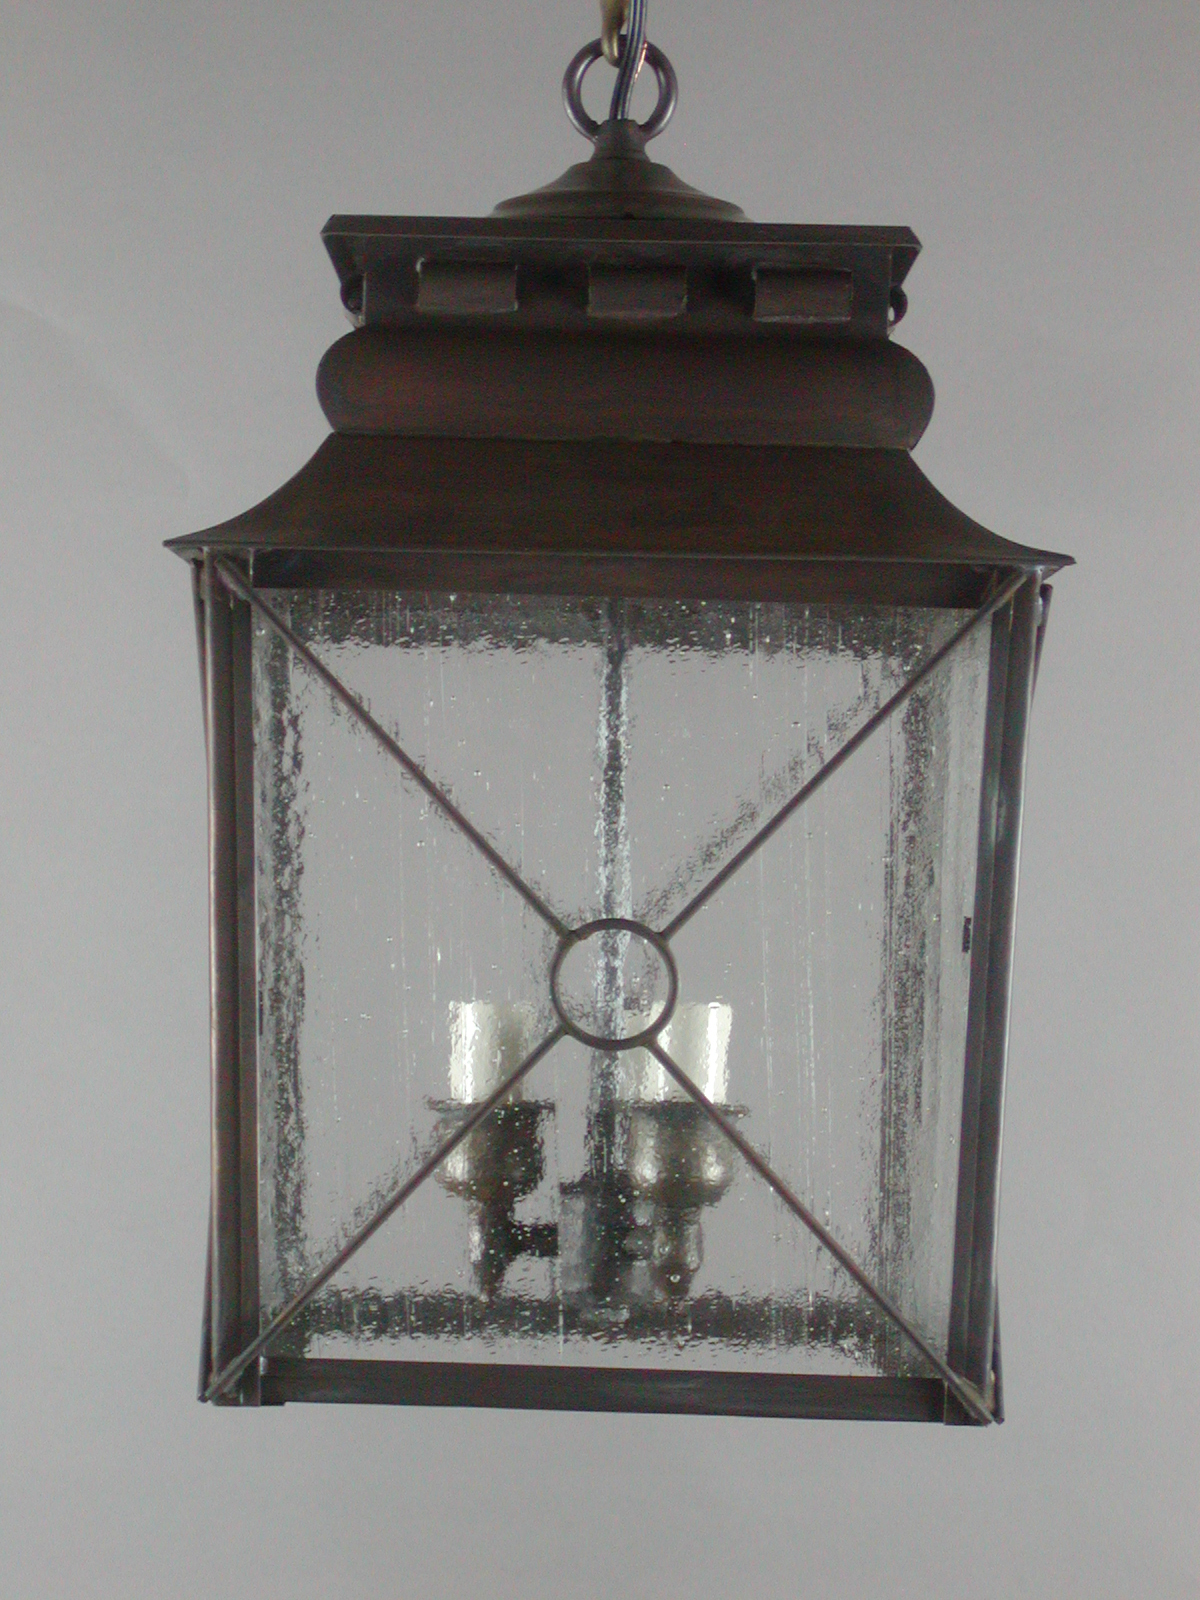 french provincial lighting. French Provincial Hanging Lantern W/ Grill Work-Model No. H2755G Lighting